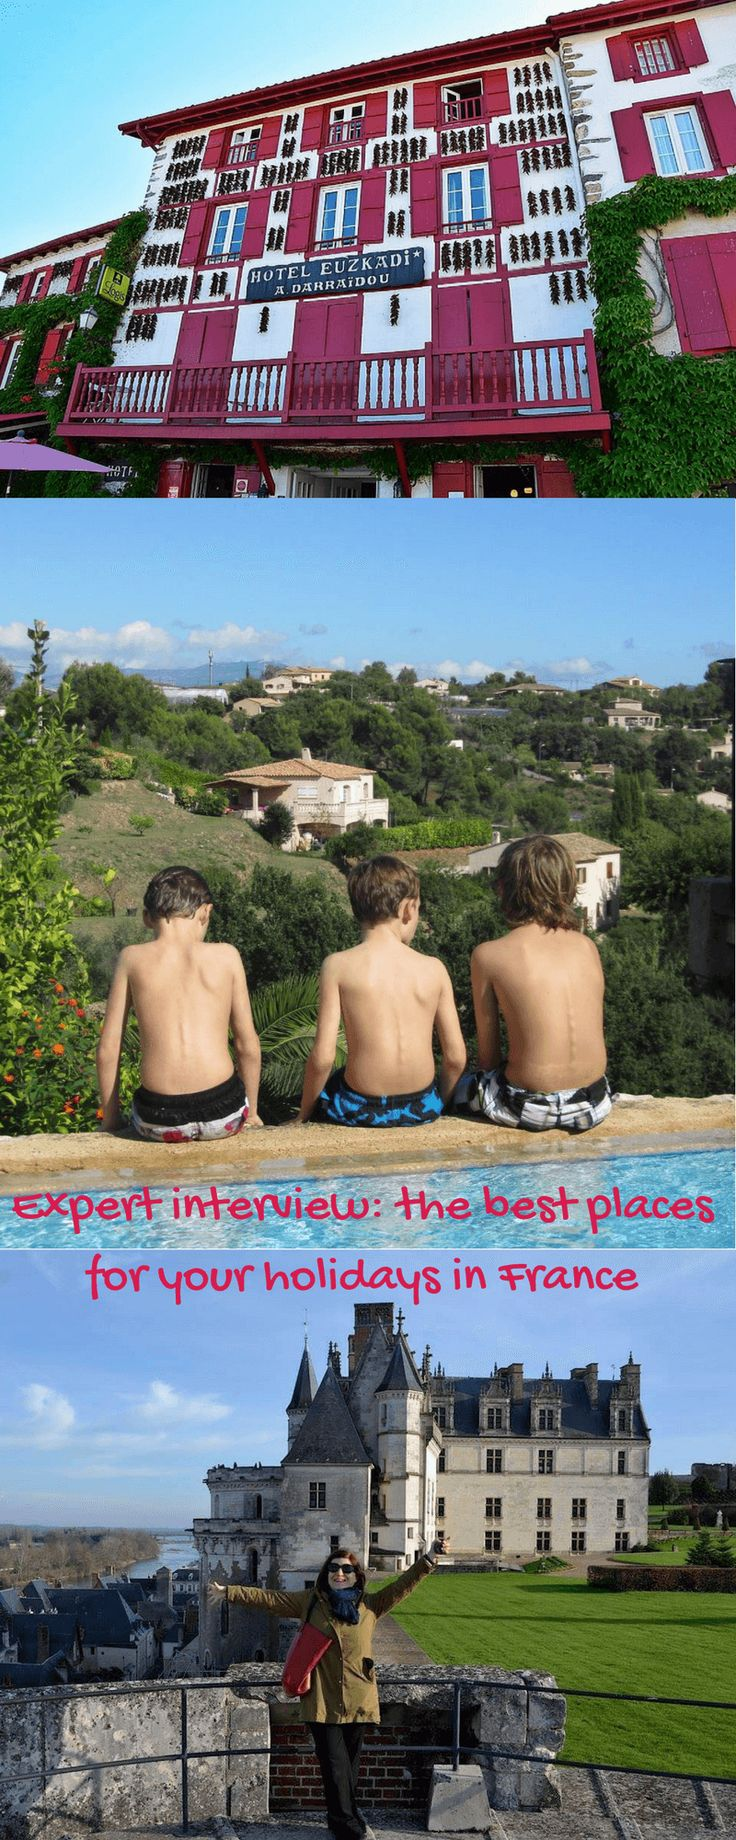 Expert interview- the best places for your holidays in France